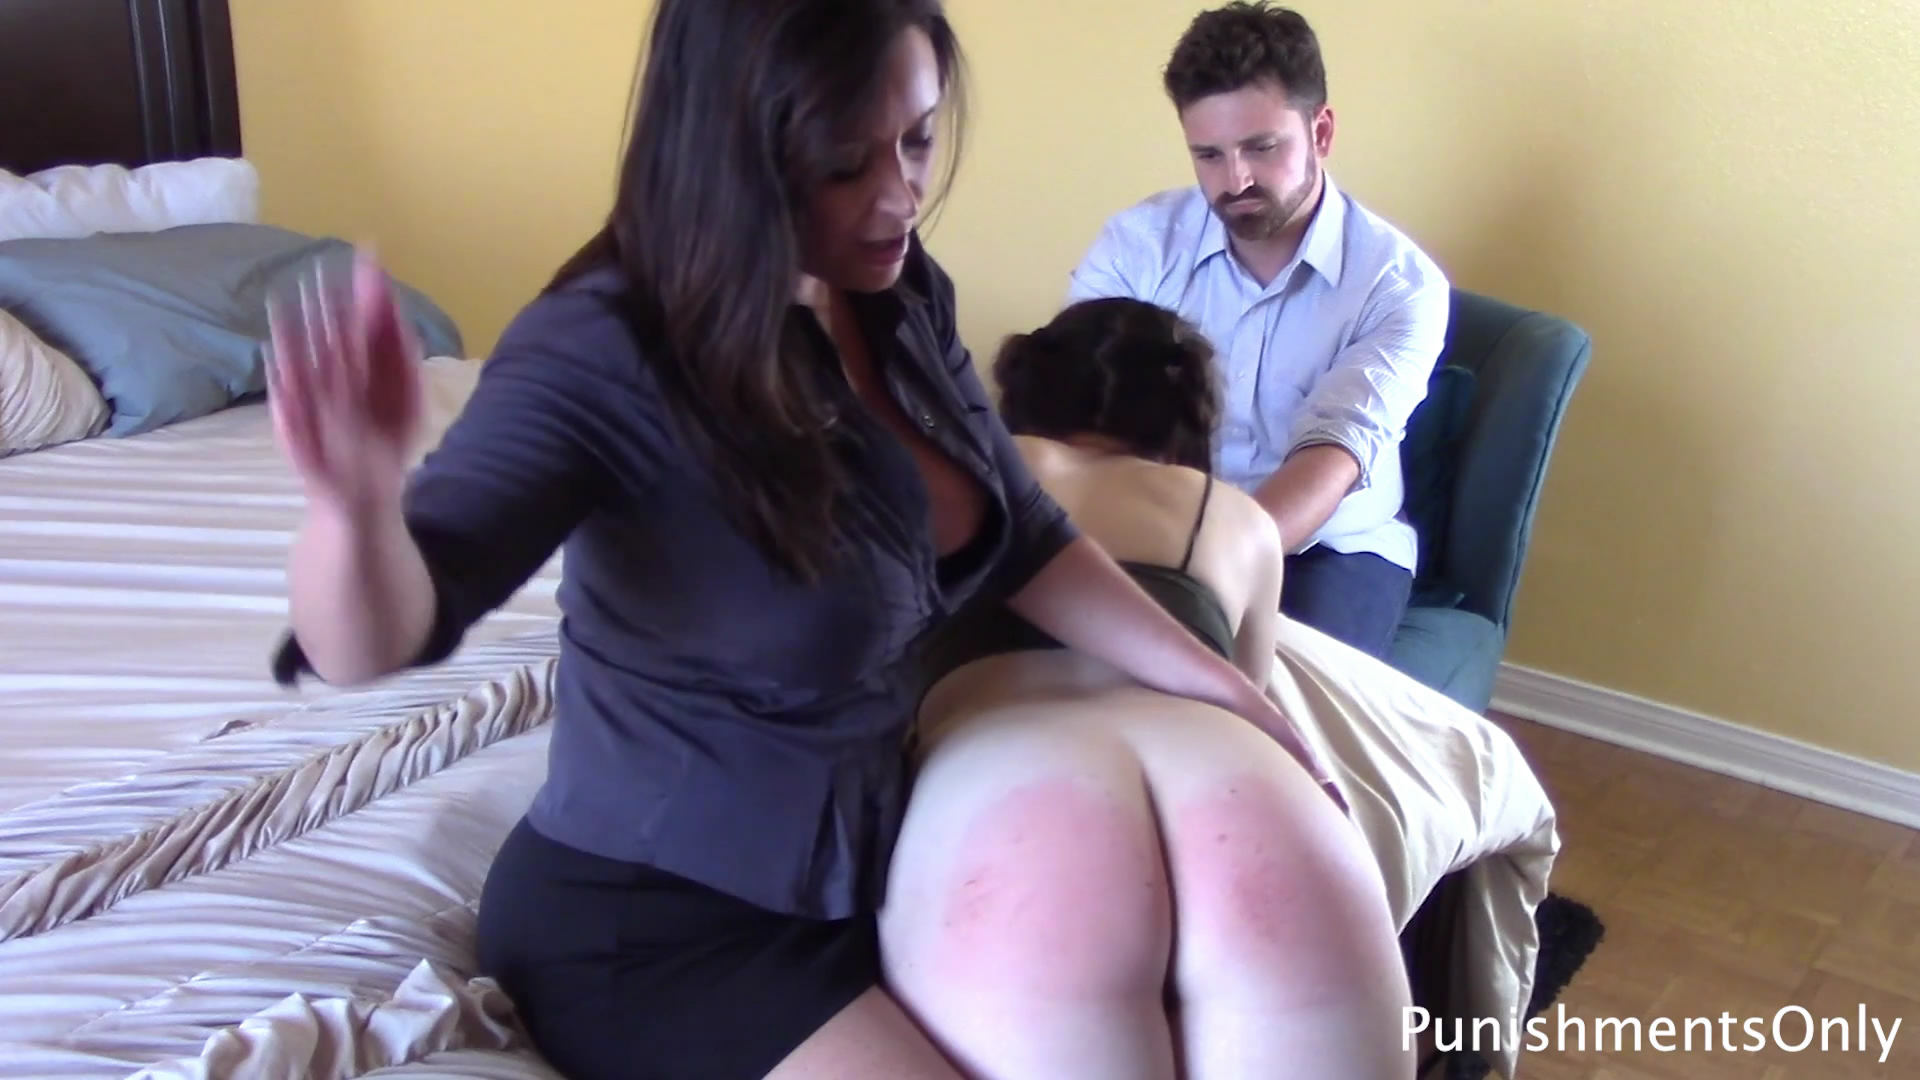 Punishments Only – MP4/Full HD – Christina Carter, Luci Lovett – Spankings are not Refusable